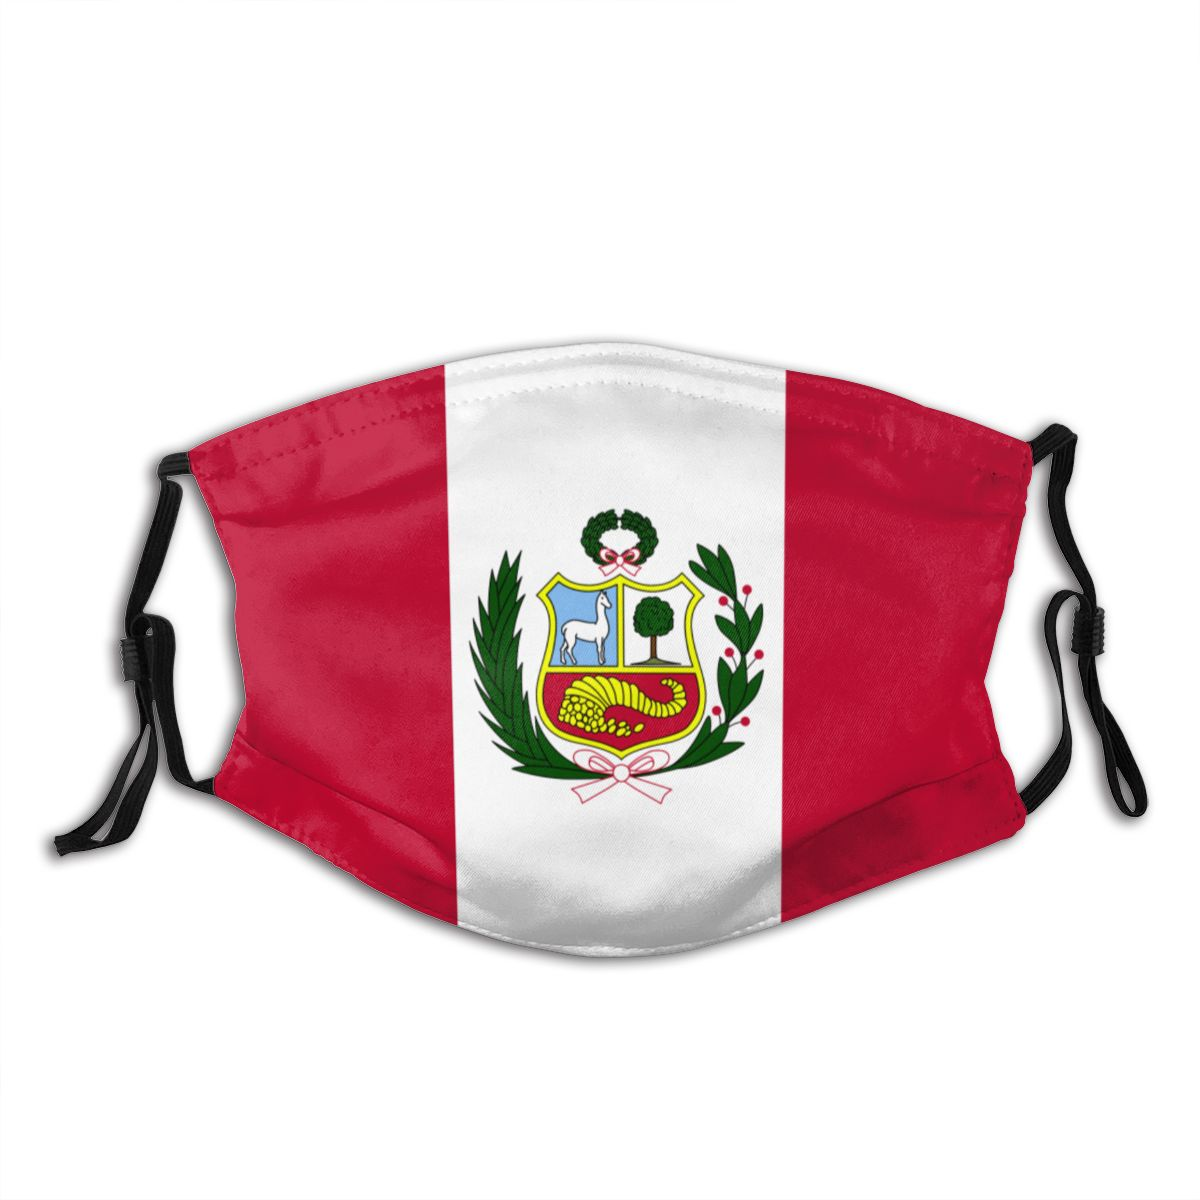 Protective Mask With Filter Peru Flag Anti Dust PM2.5 Reuse Adult Teen Child Girl